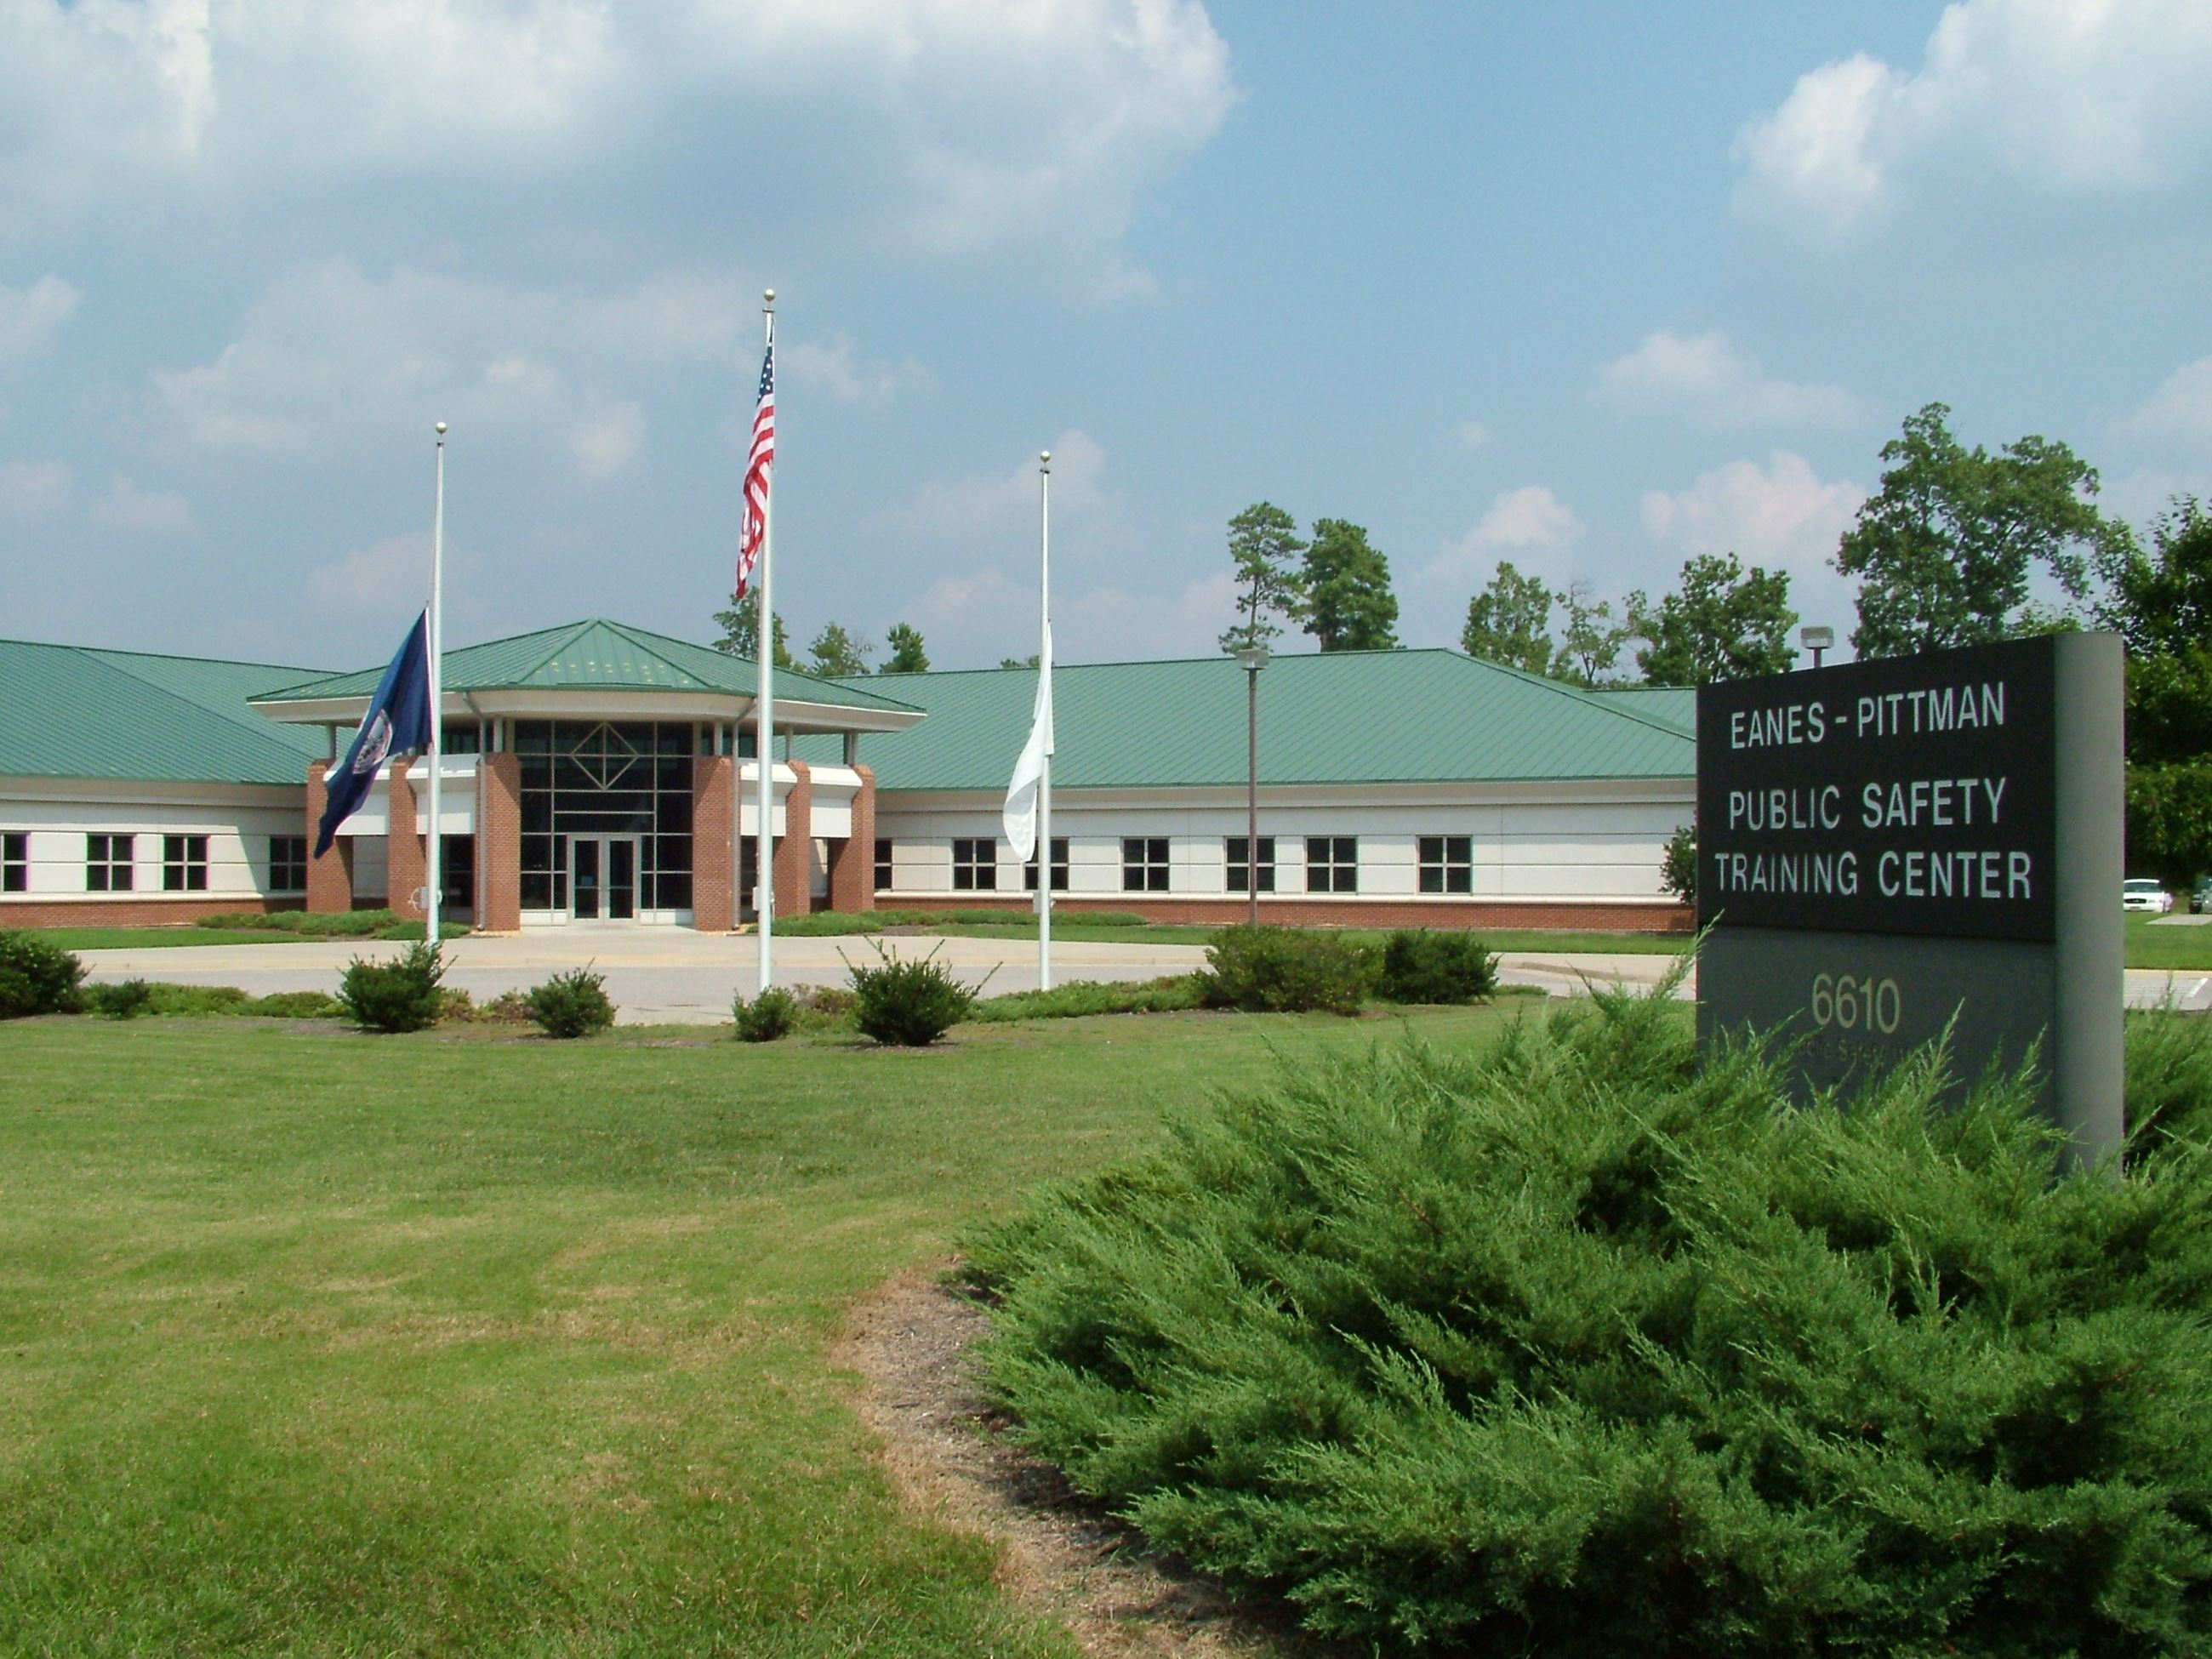 Exterior photo of the Eanes-Pittman Public Safety Training Center